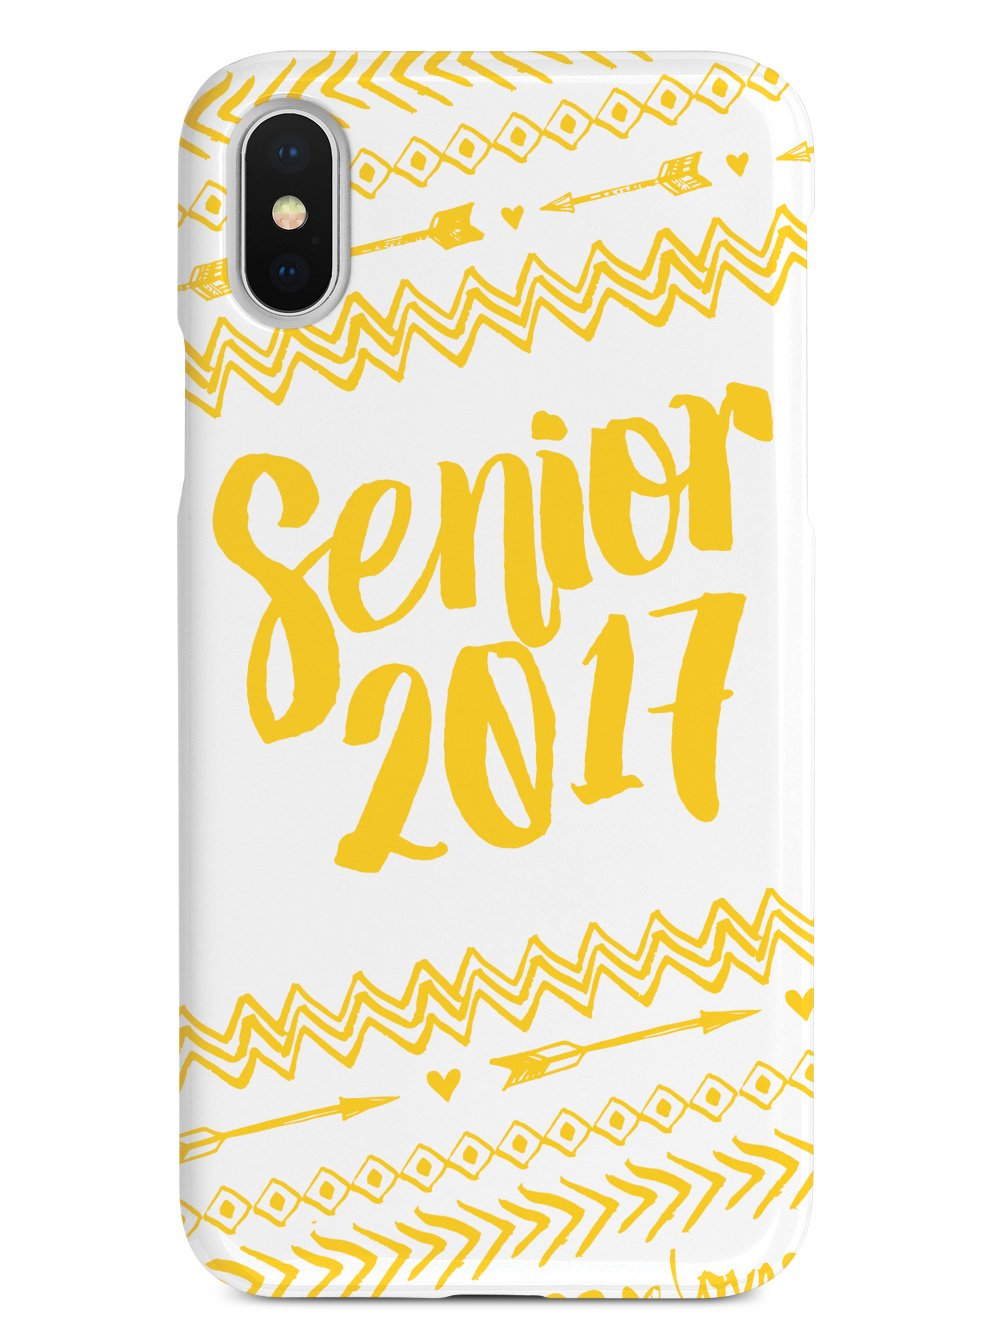 Senior 2017 - Yellow Case - pipercleo.com